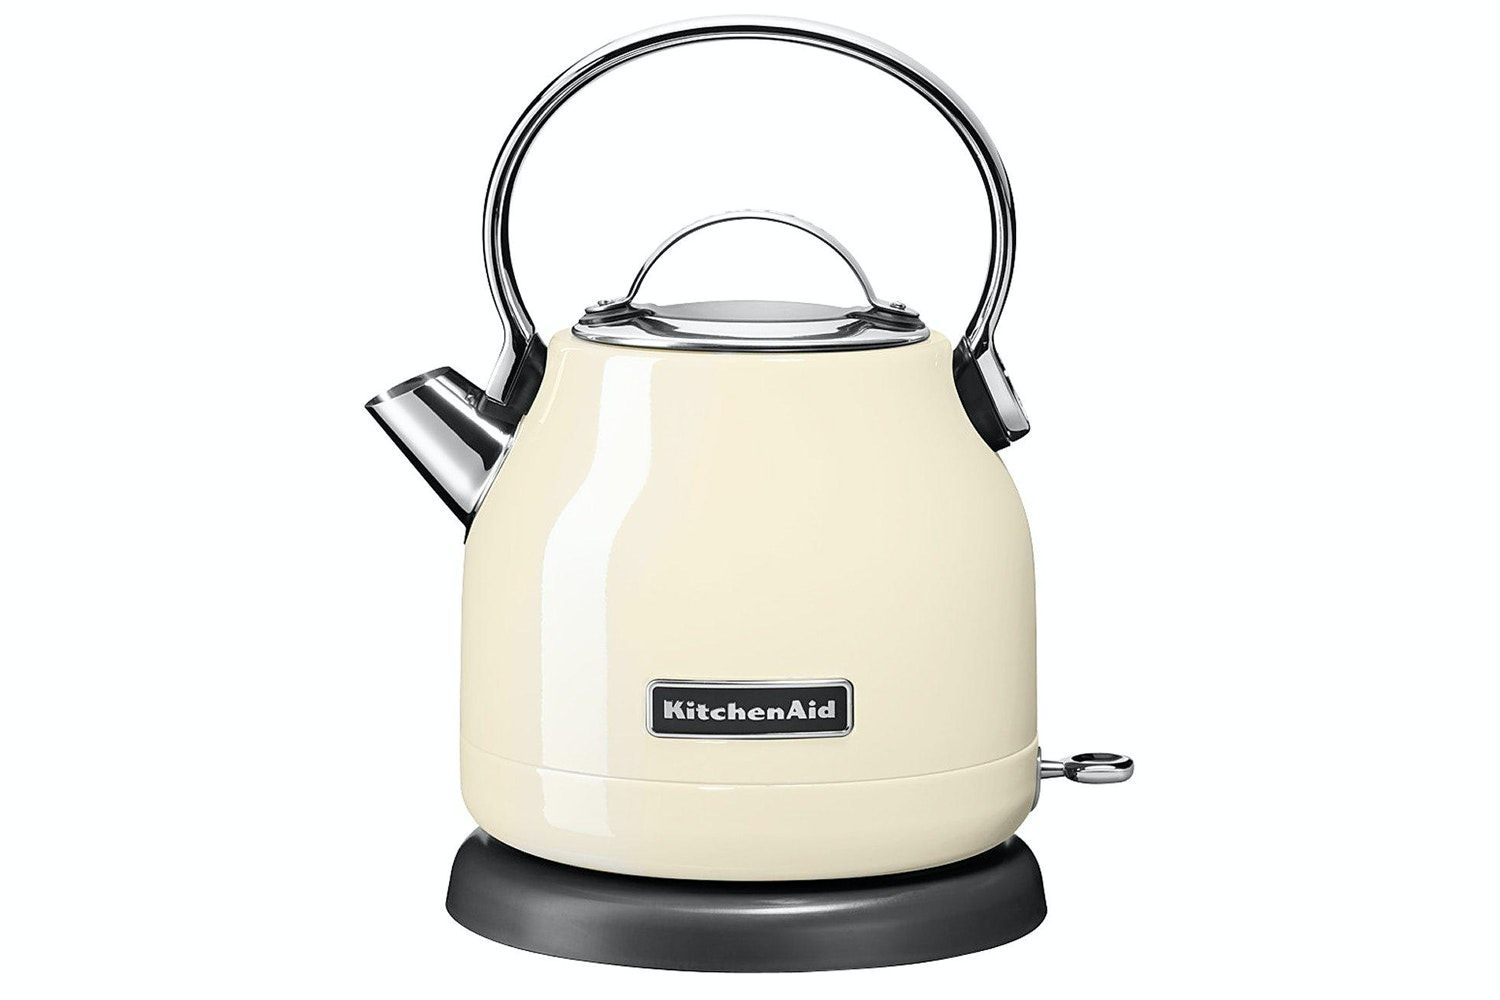 KitchenAid 1.25L Dome Water Kettle | 5KEK1222BAC | Almond Cream